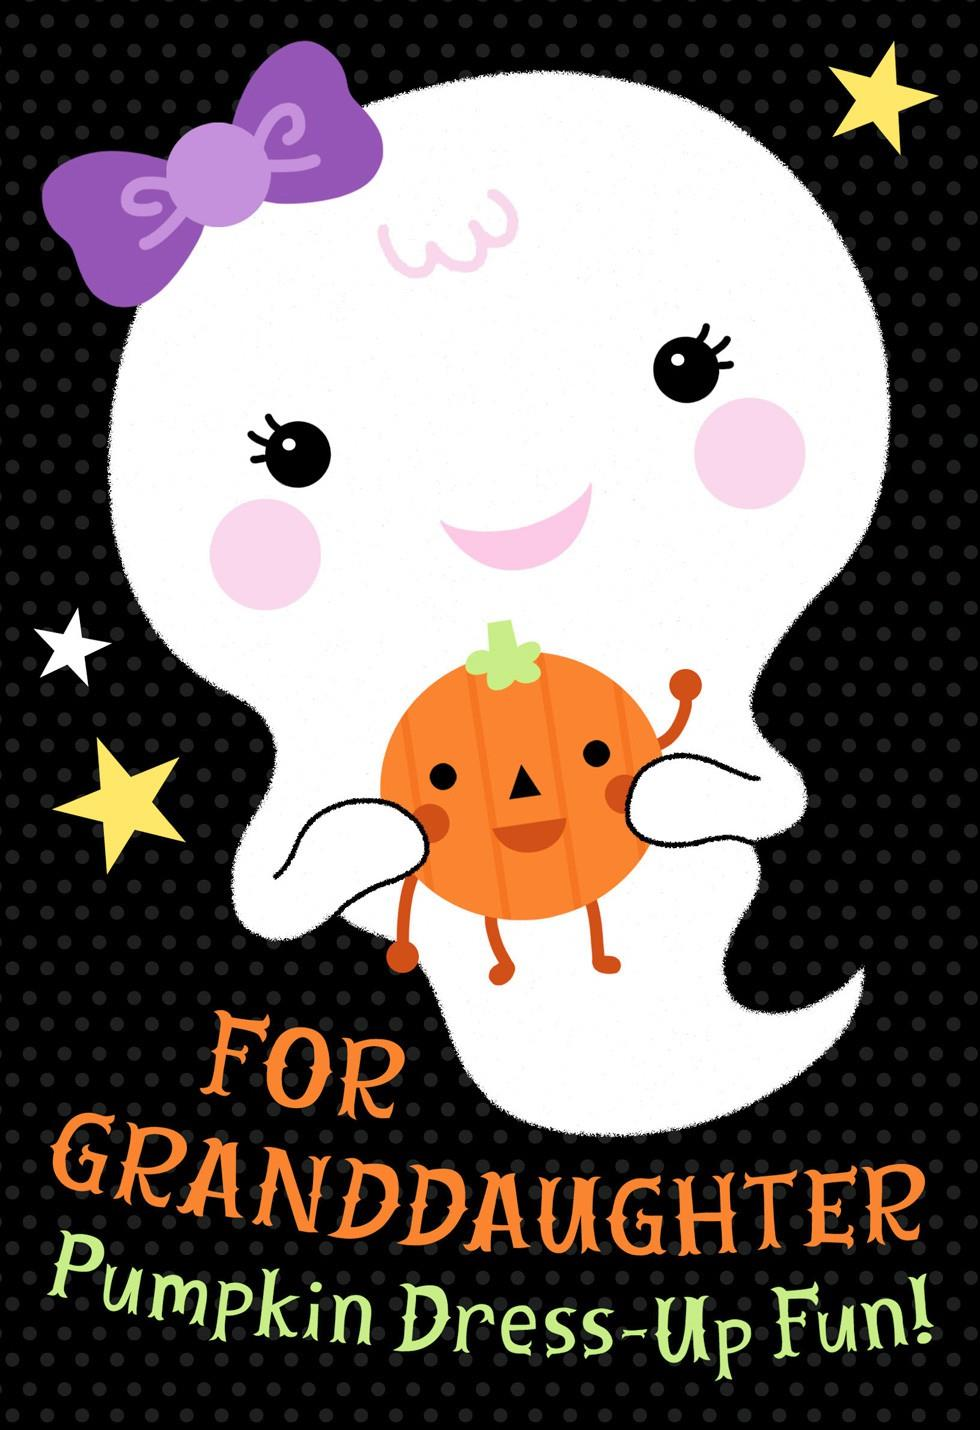 Halloween cards hallmark dress up your pumpkin halloween card with stickers for granddaughter kristyandbryce Images